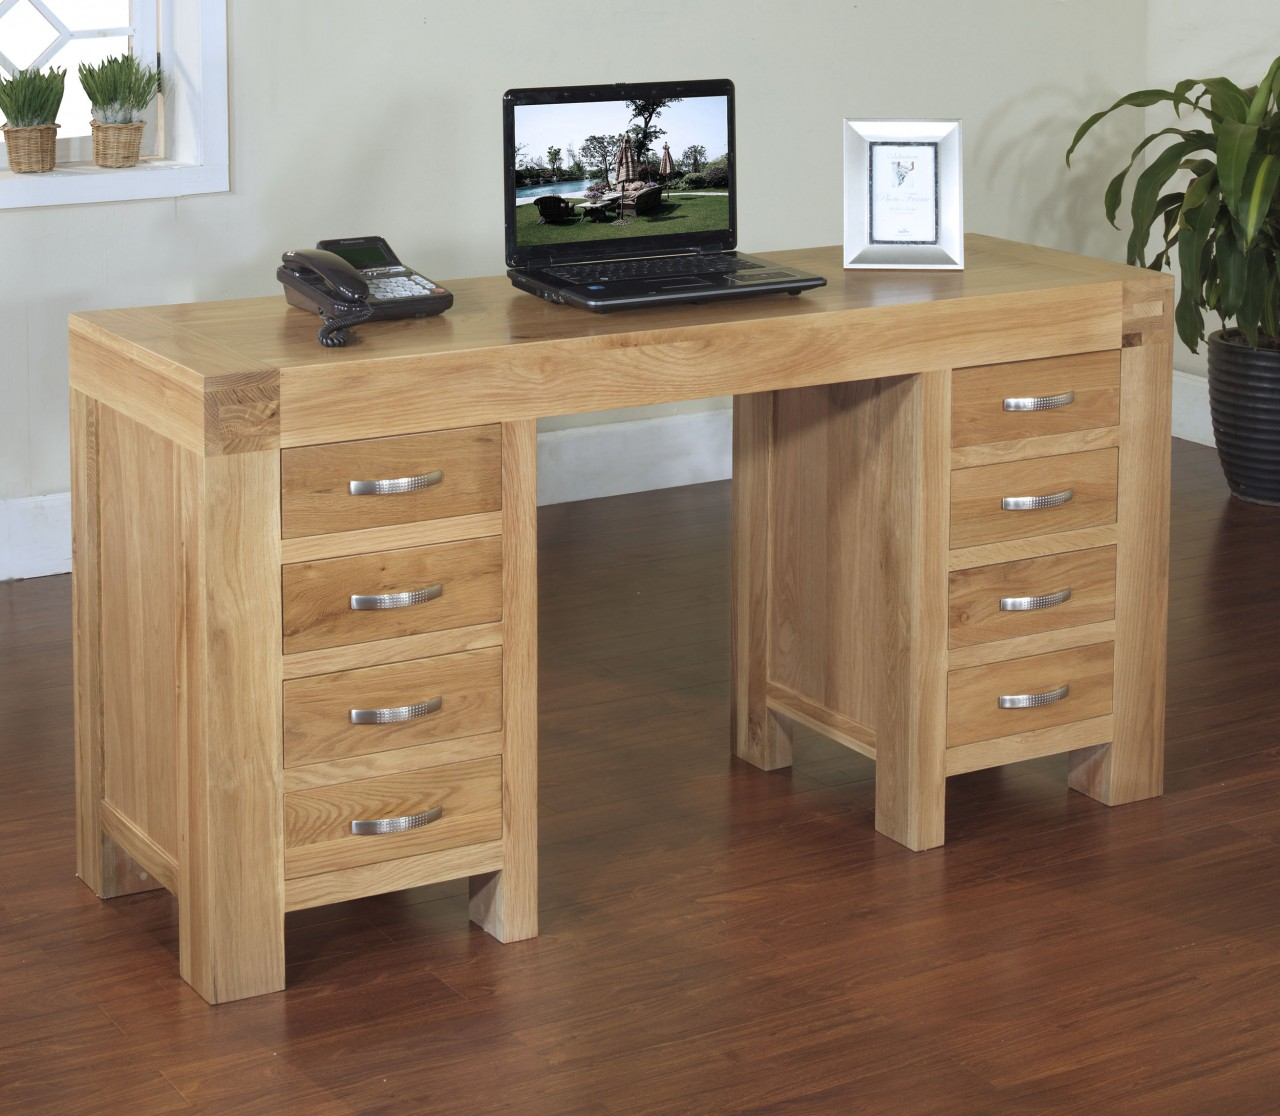 Langton solid oak office furniture large twin pedestal laptop ...